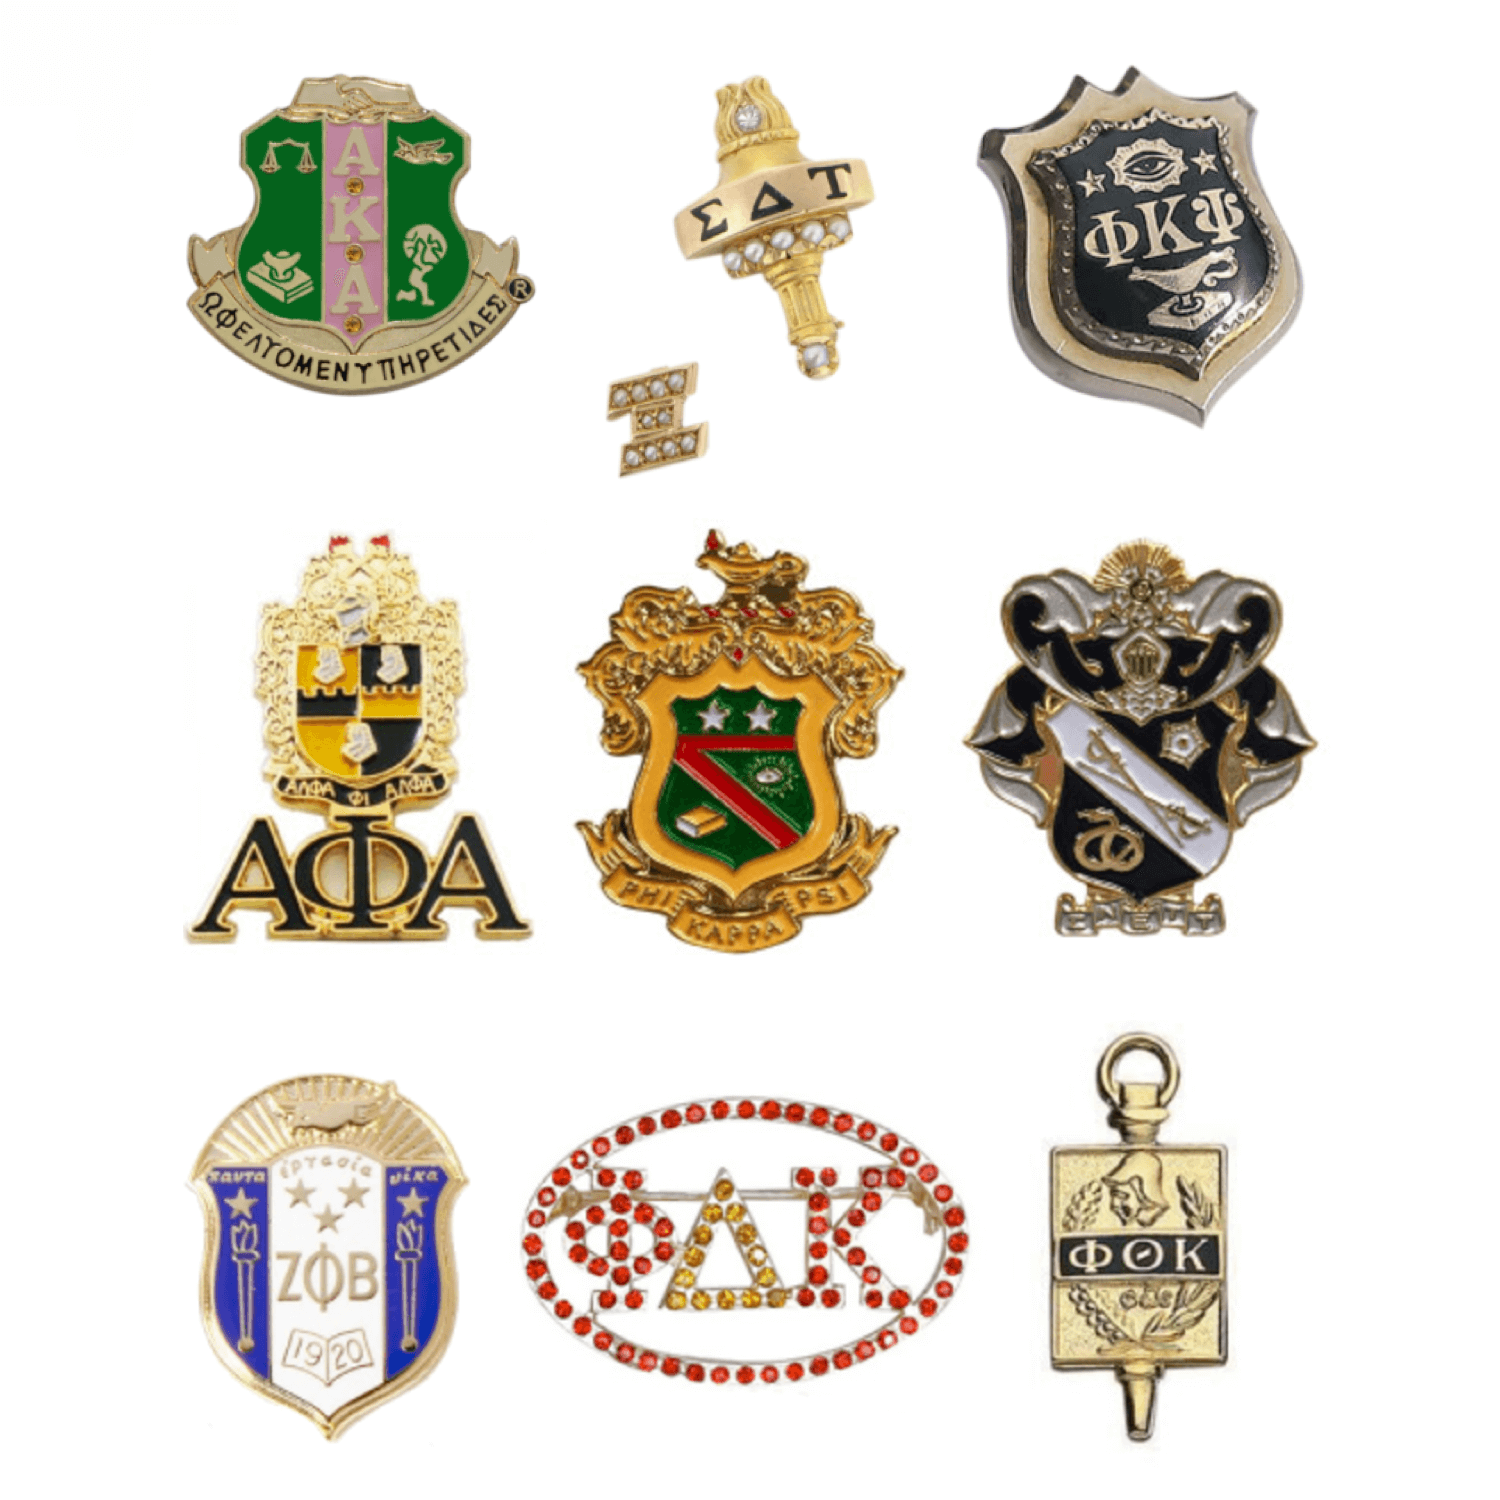 Fraternity Pins & Sorority Pins